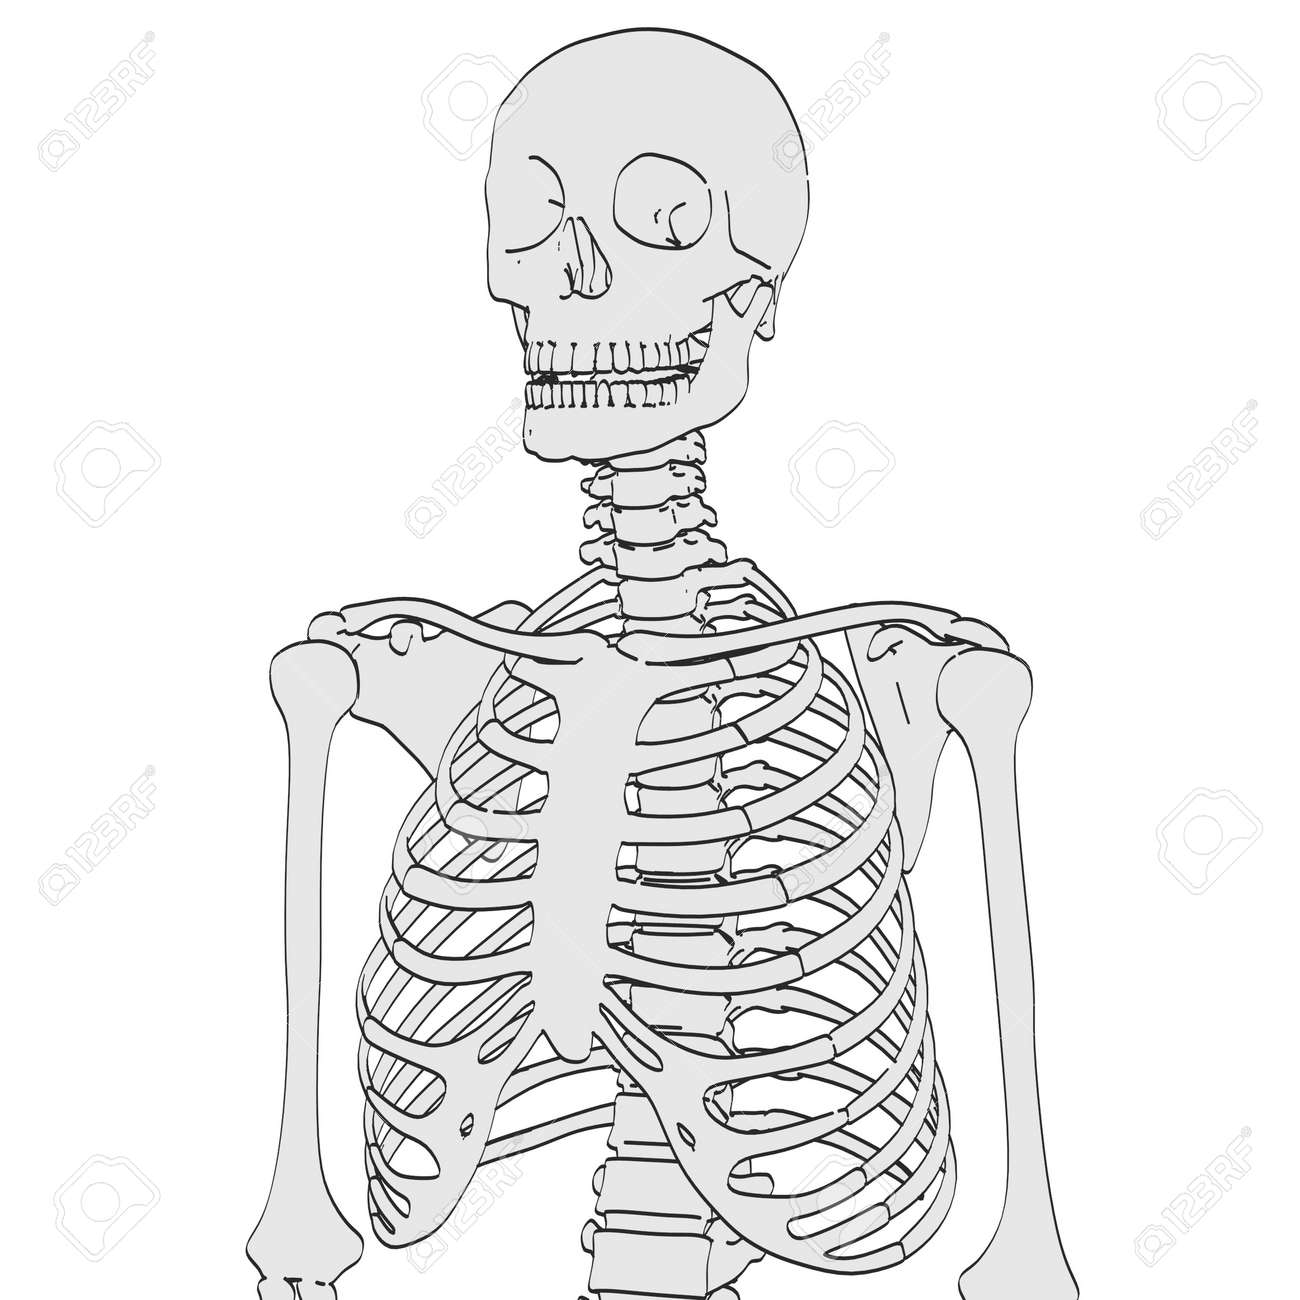 2d Cartoon Illustration Of Human Skeleton Stock Photo Picture And